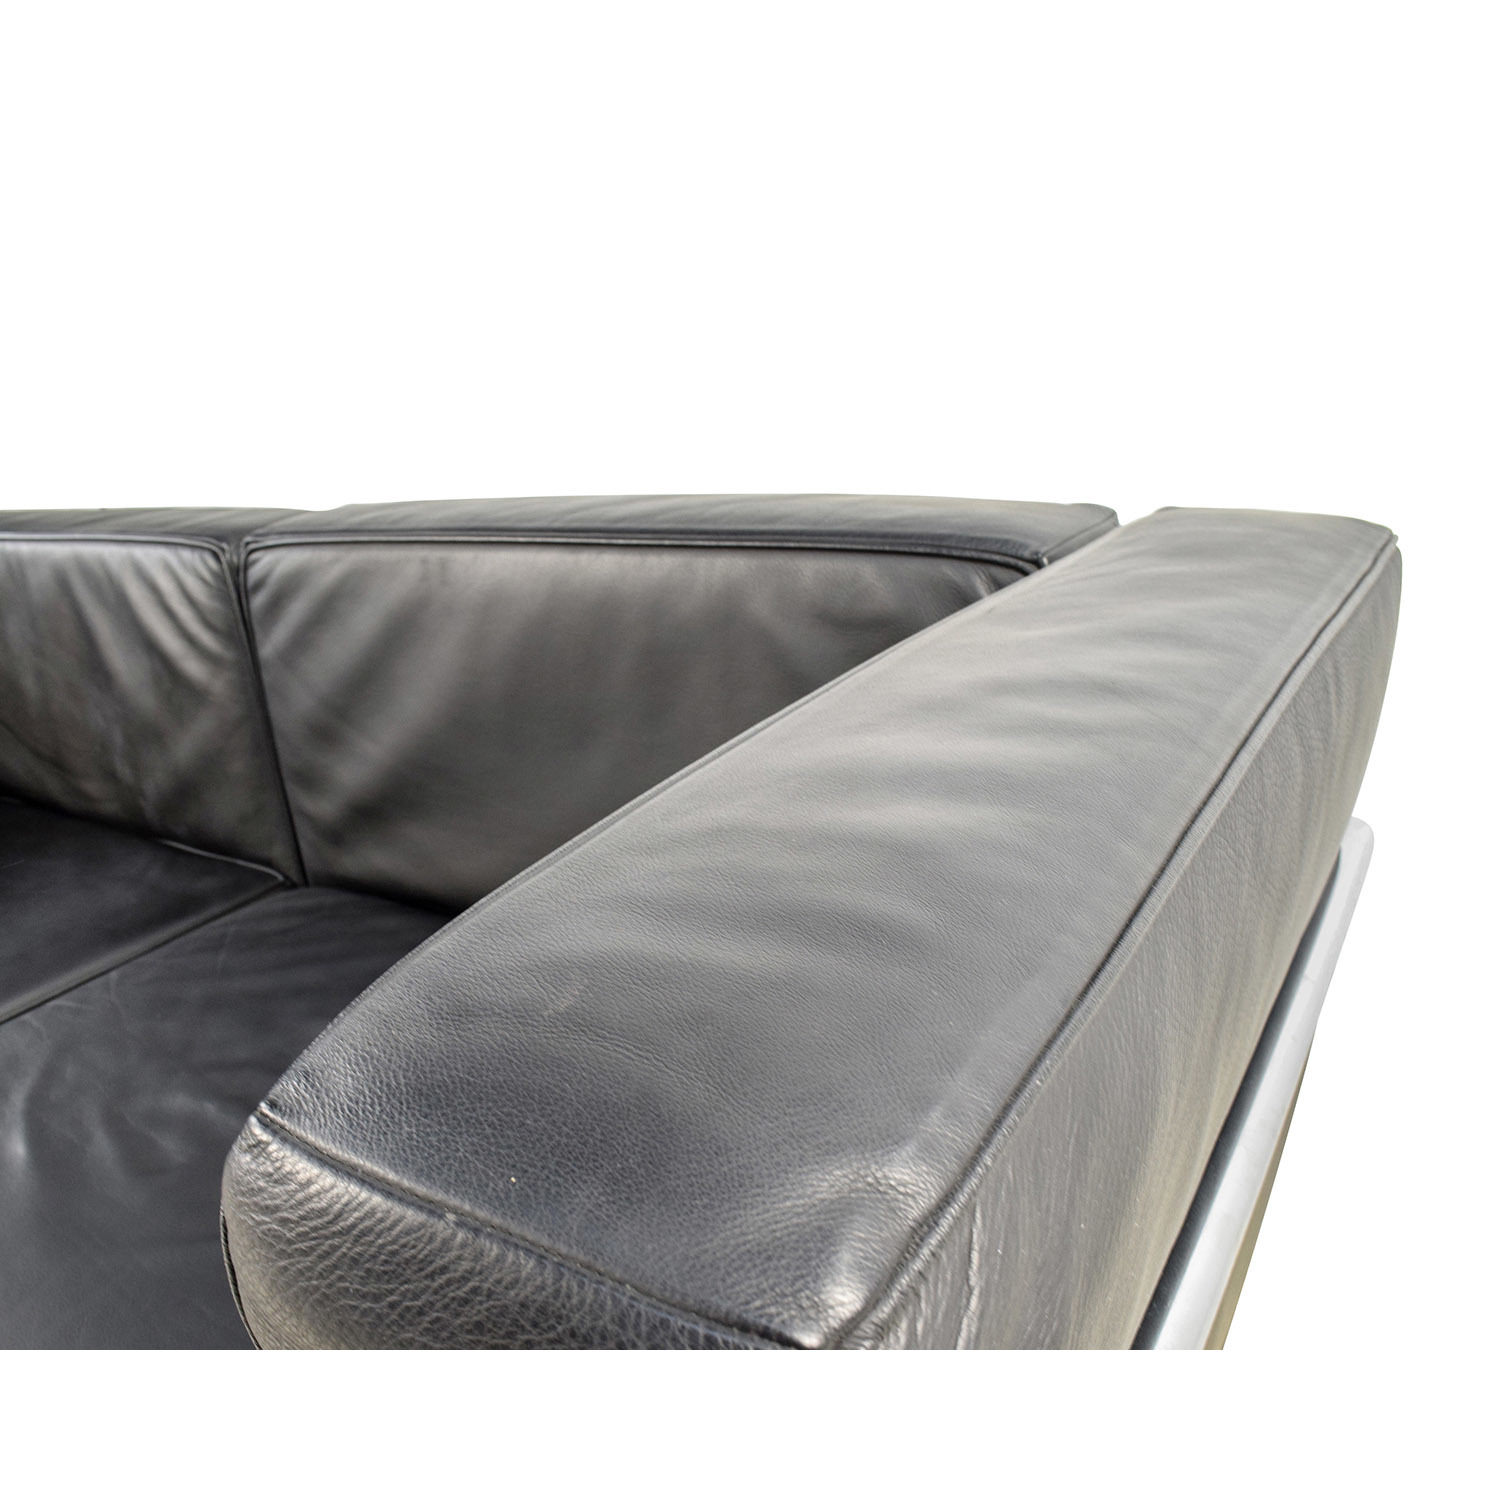 Sofa bed design within reach -  Design Within Reach Lc3 Grande Modele Two Seat Black Leather Sofa Design Within Reach